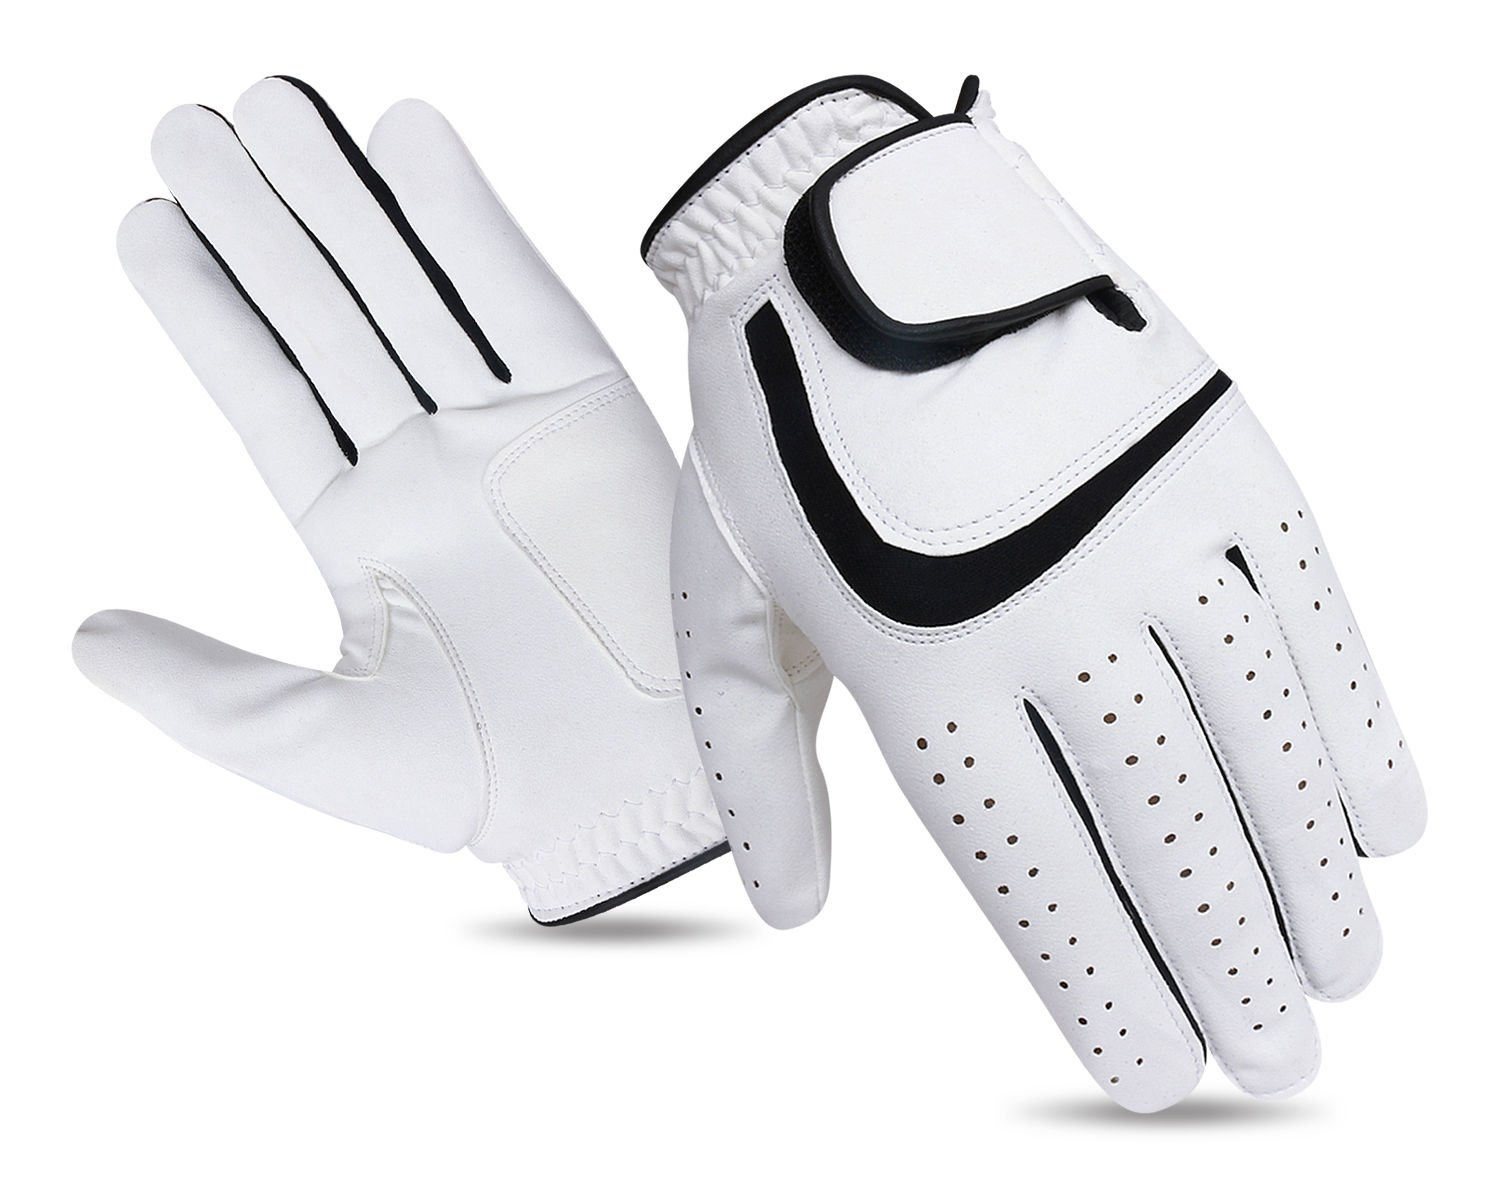 save up to 80% ever popular fresh styles JL Golf all weather synthetic golf glove Mens - Choose size and dexterity